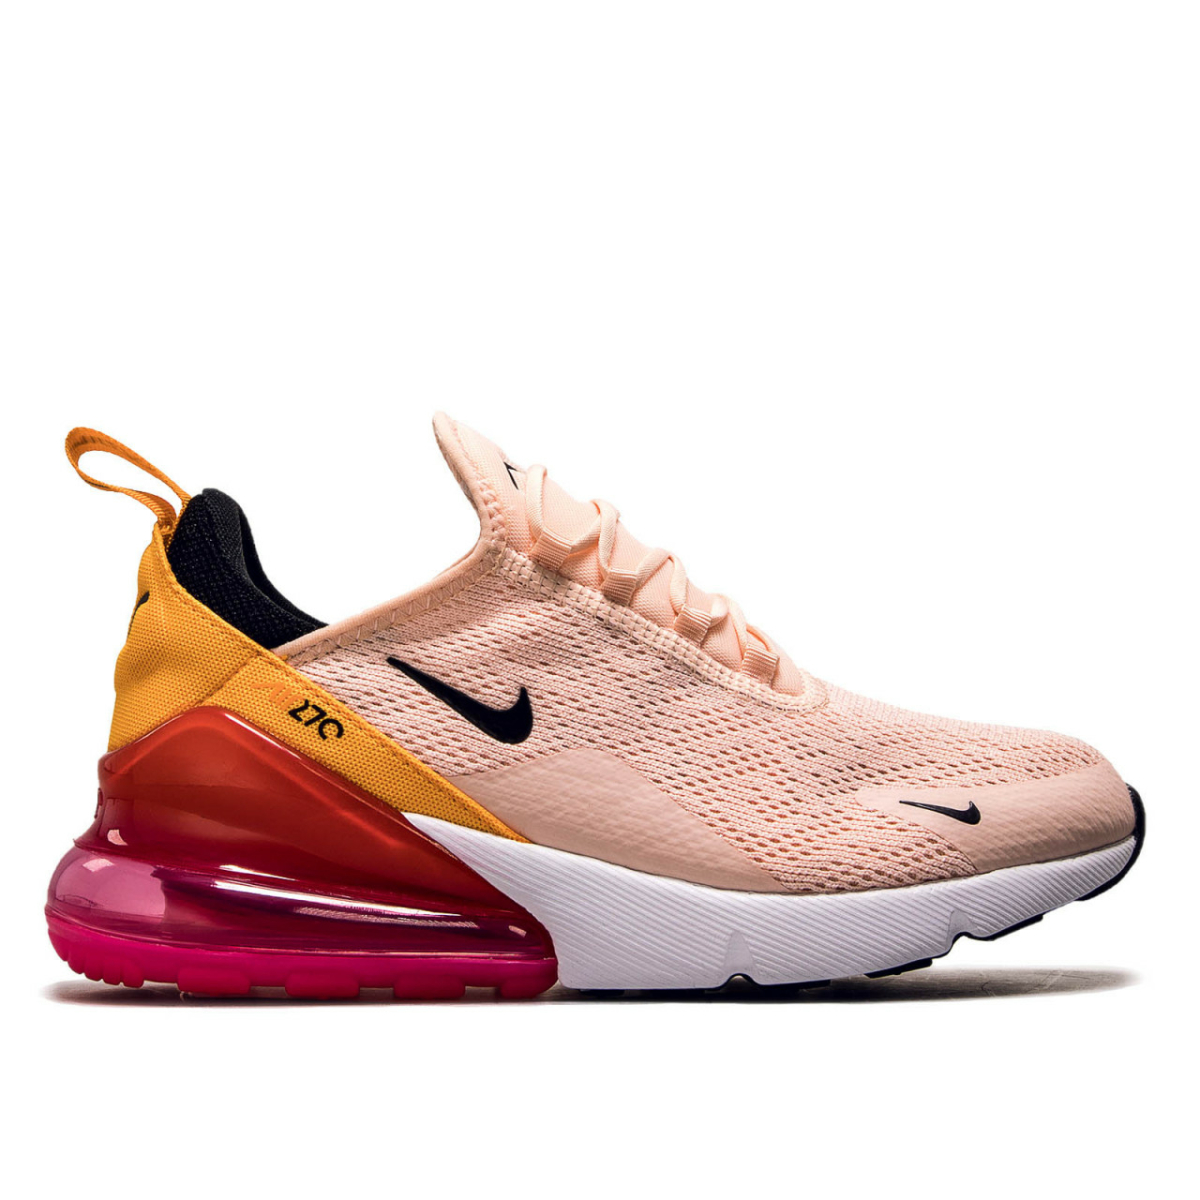 Nike Air Max Zero in bunt 857661006 | everysize